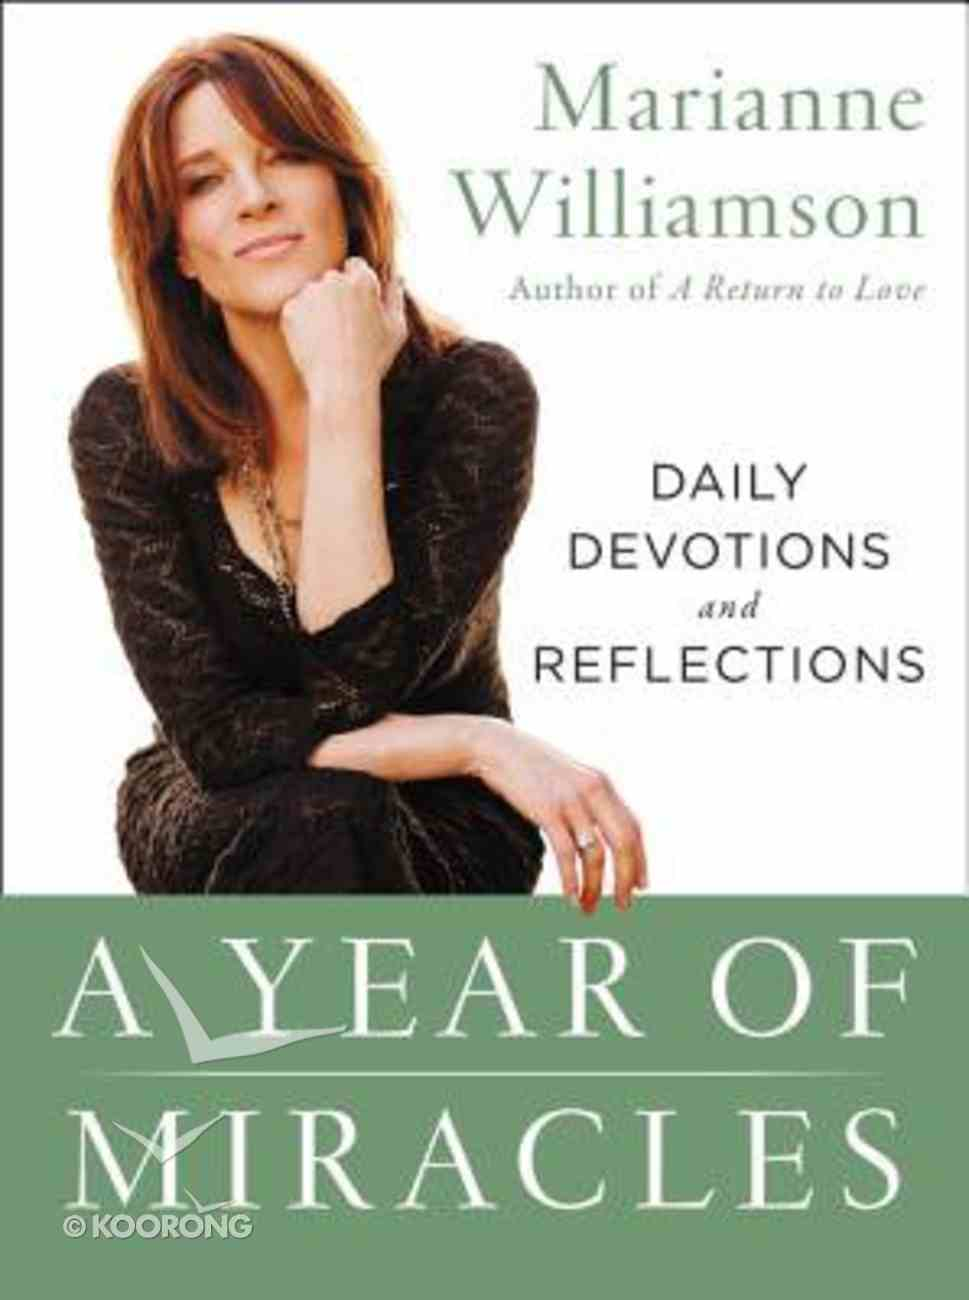 A Year of Miracles: Daily Devotions and Reflections Paperback